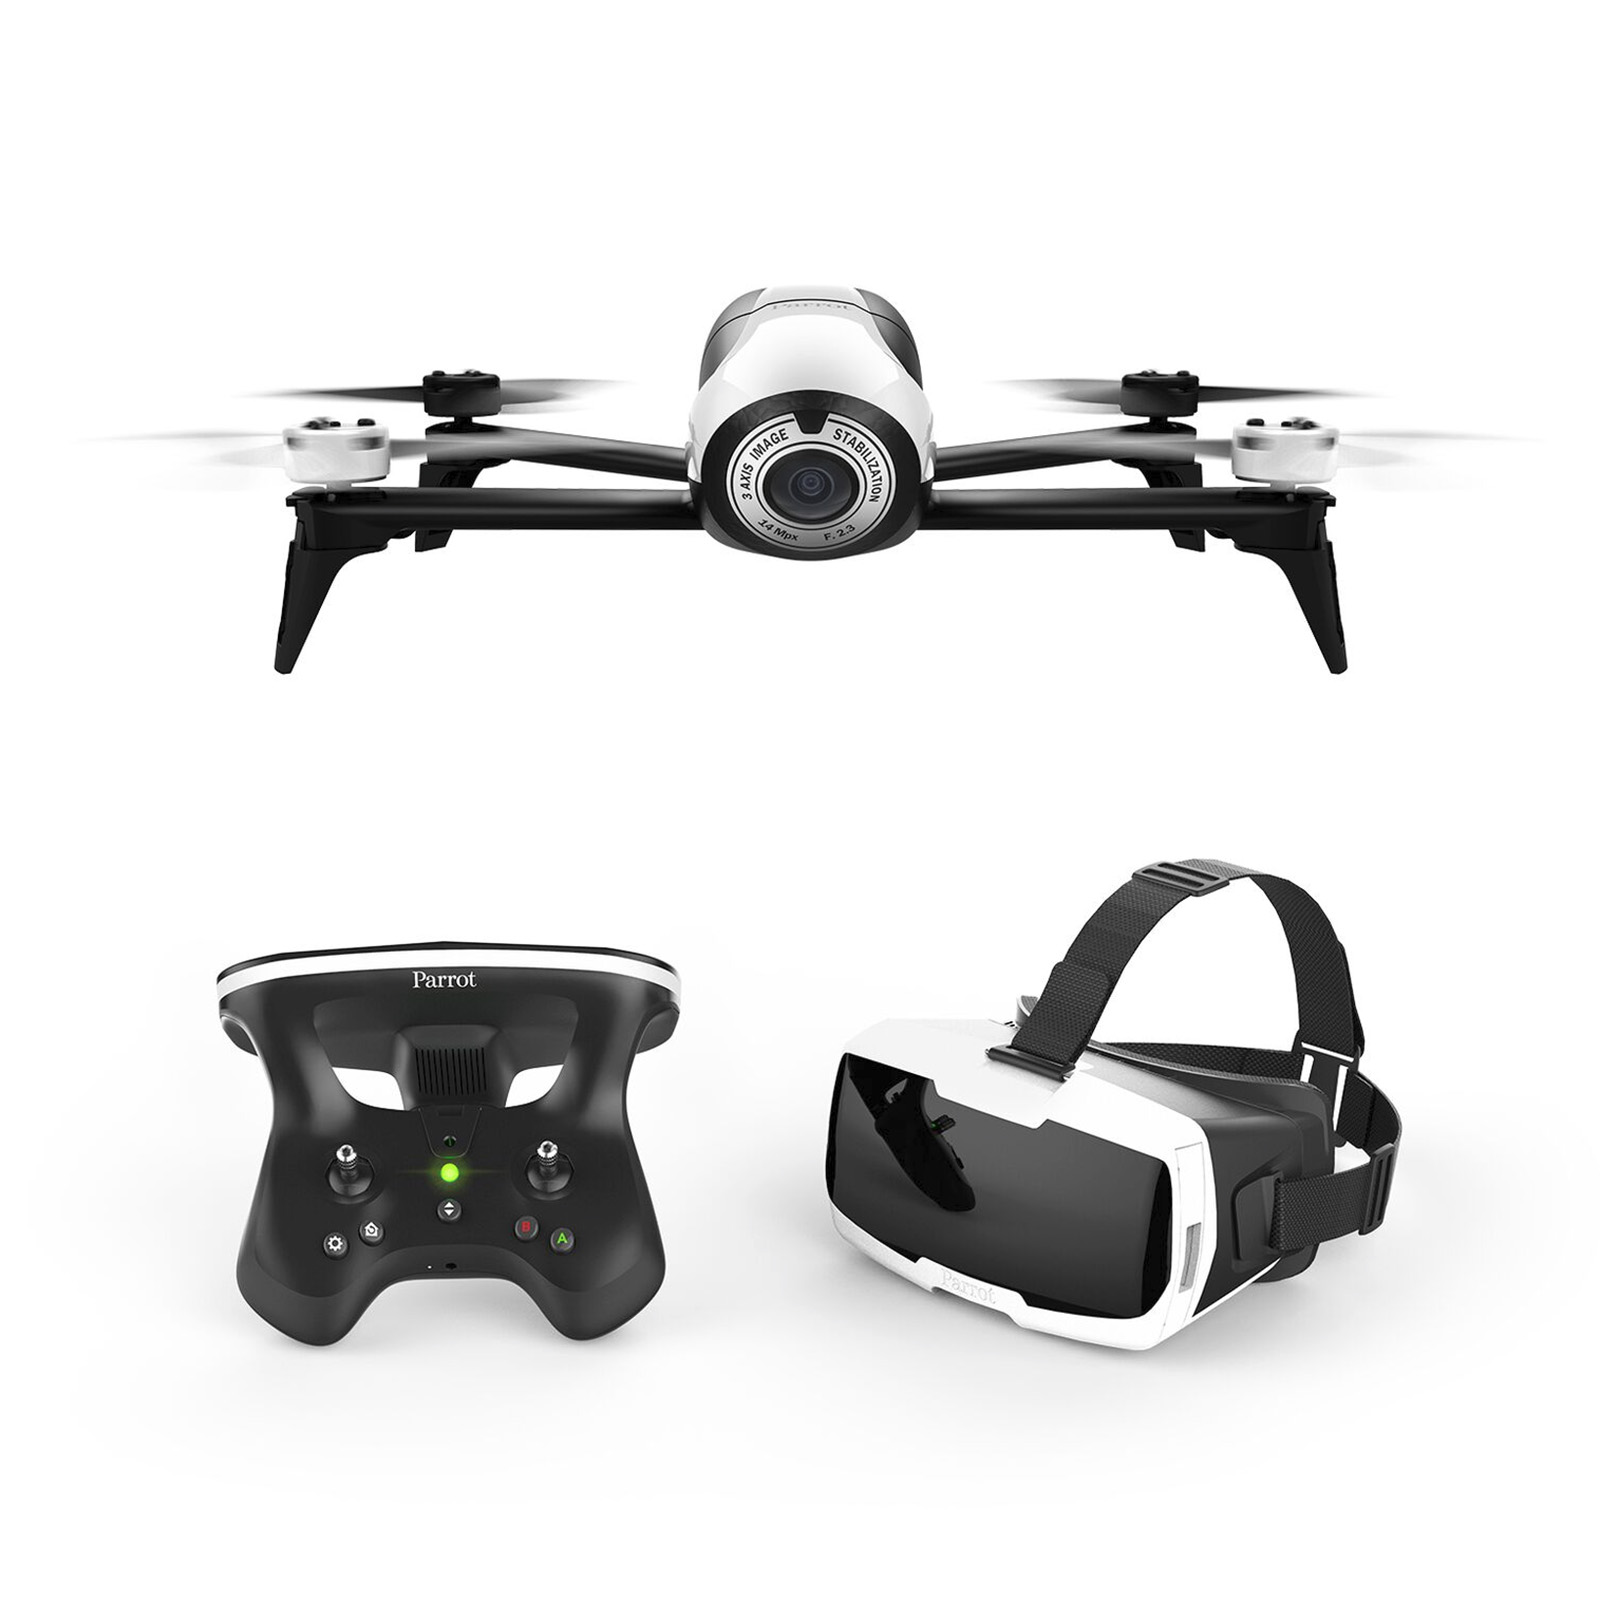 Parrot Bebop 2 FPV Drone Kit with Parrot CockpitGlasses and Parrot SkyController 2 (White) (Refurbished)